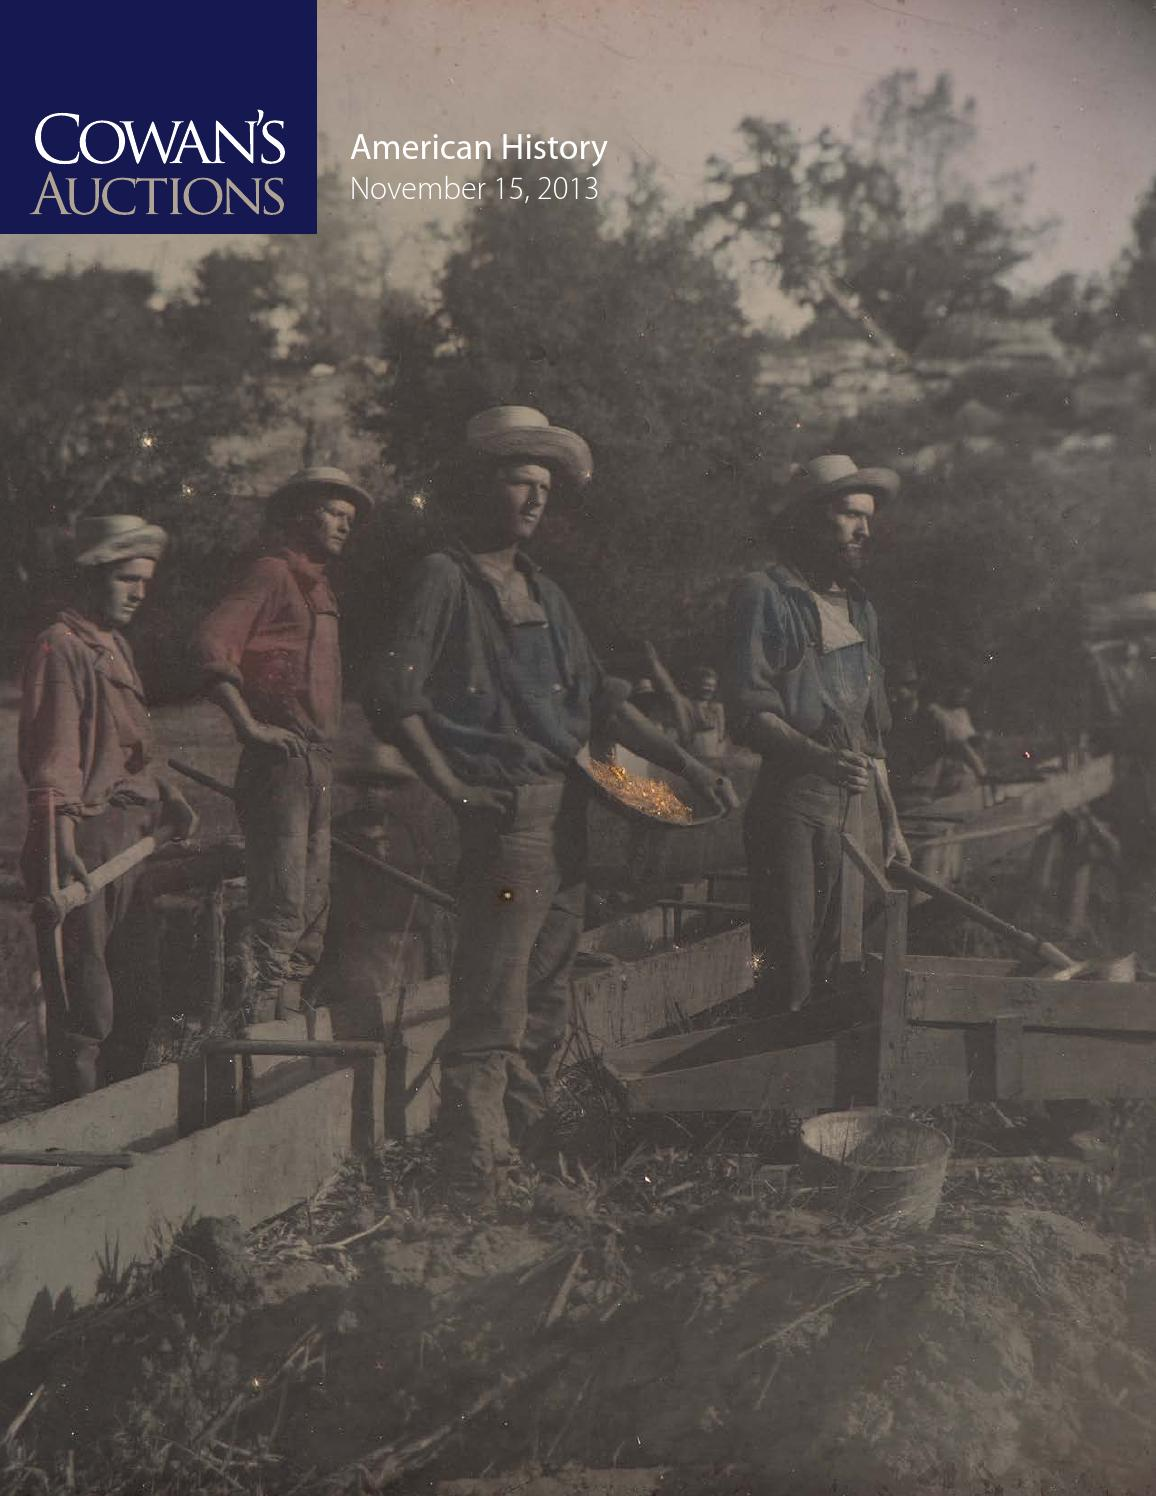 American History By Cowans Auctions